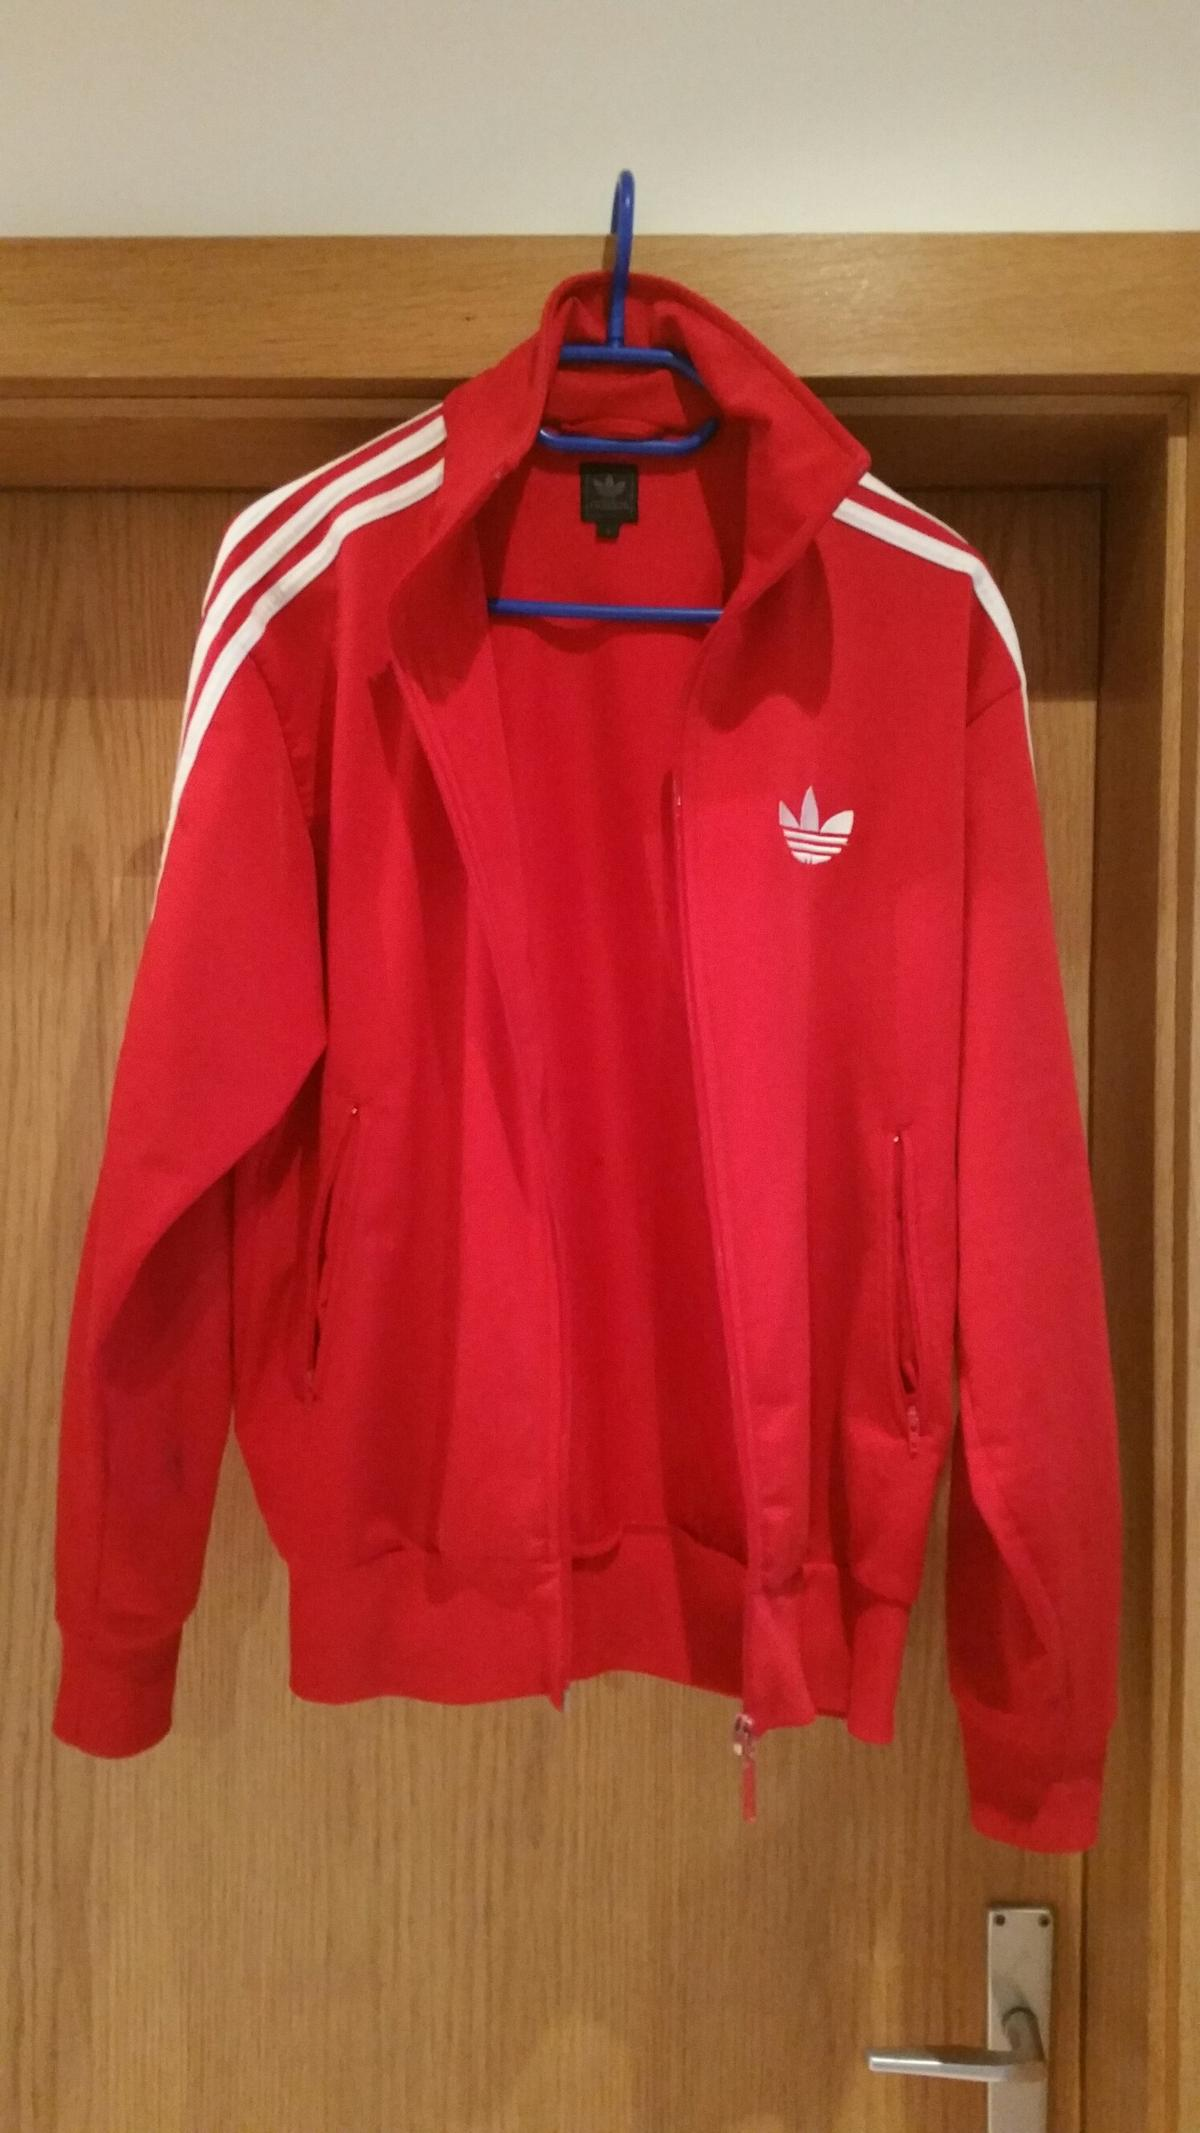 Adidas Firebird 1 TT Jacke rot weiß in 1120 Wien for €50.00